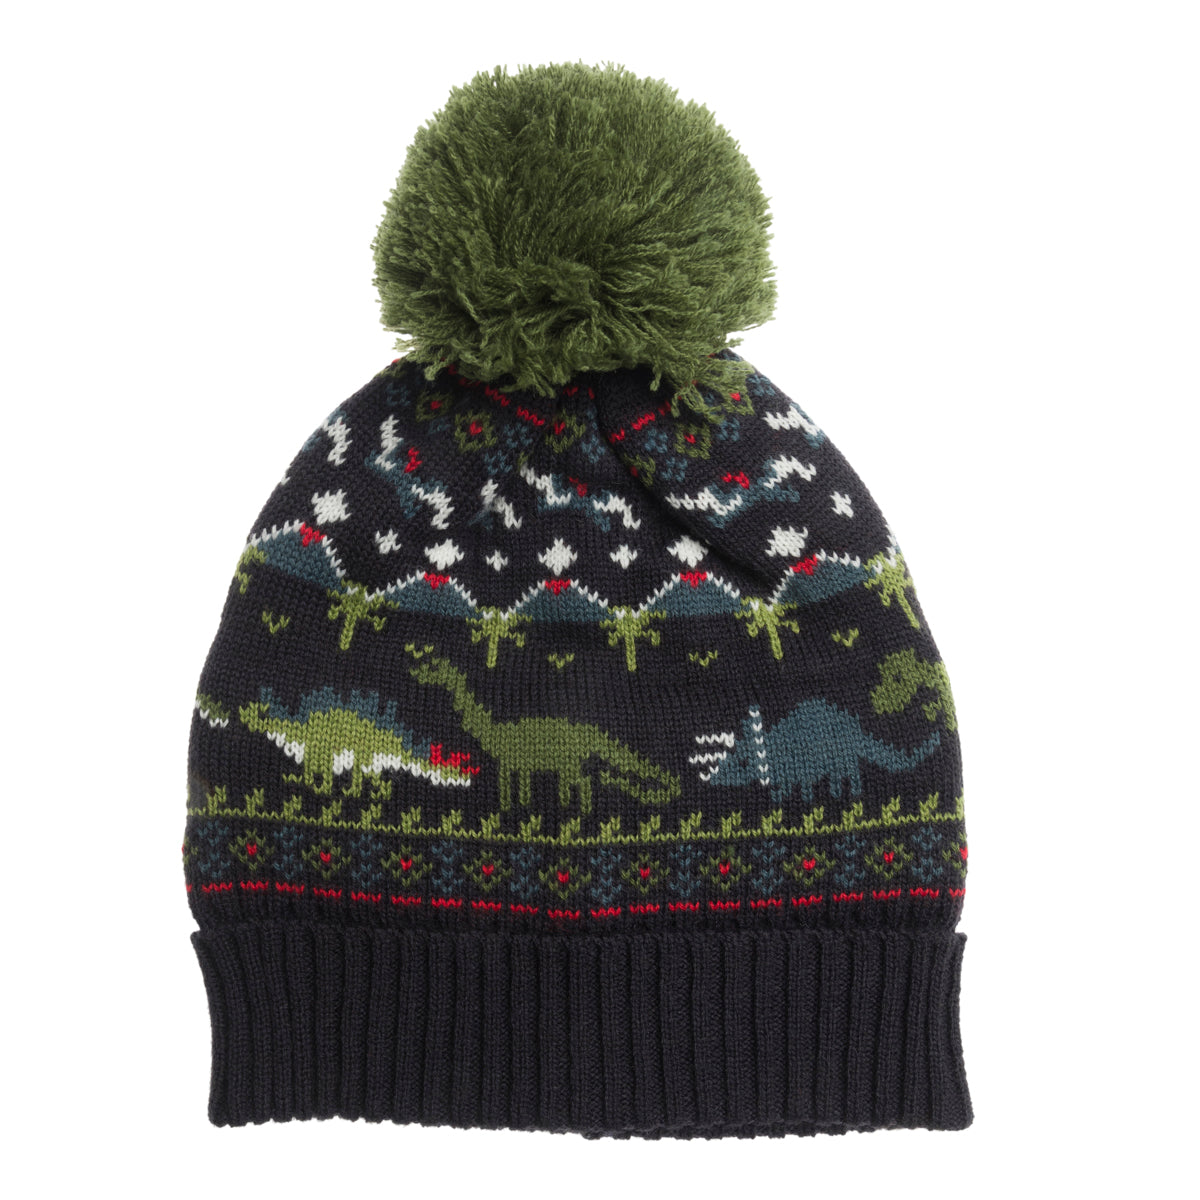 Dinosaur Knitted Kids Hat by Sophie Allport